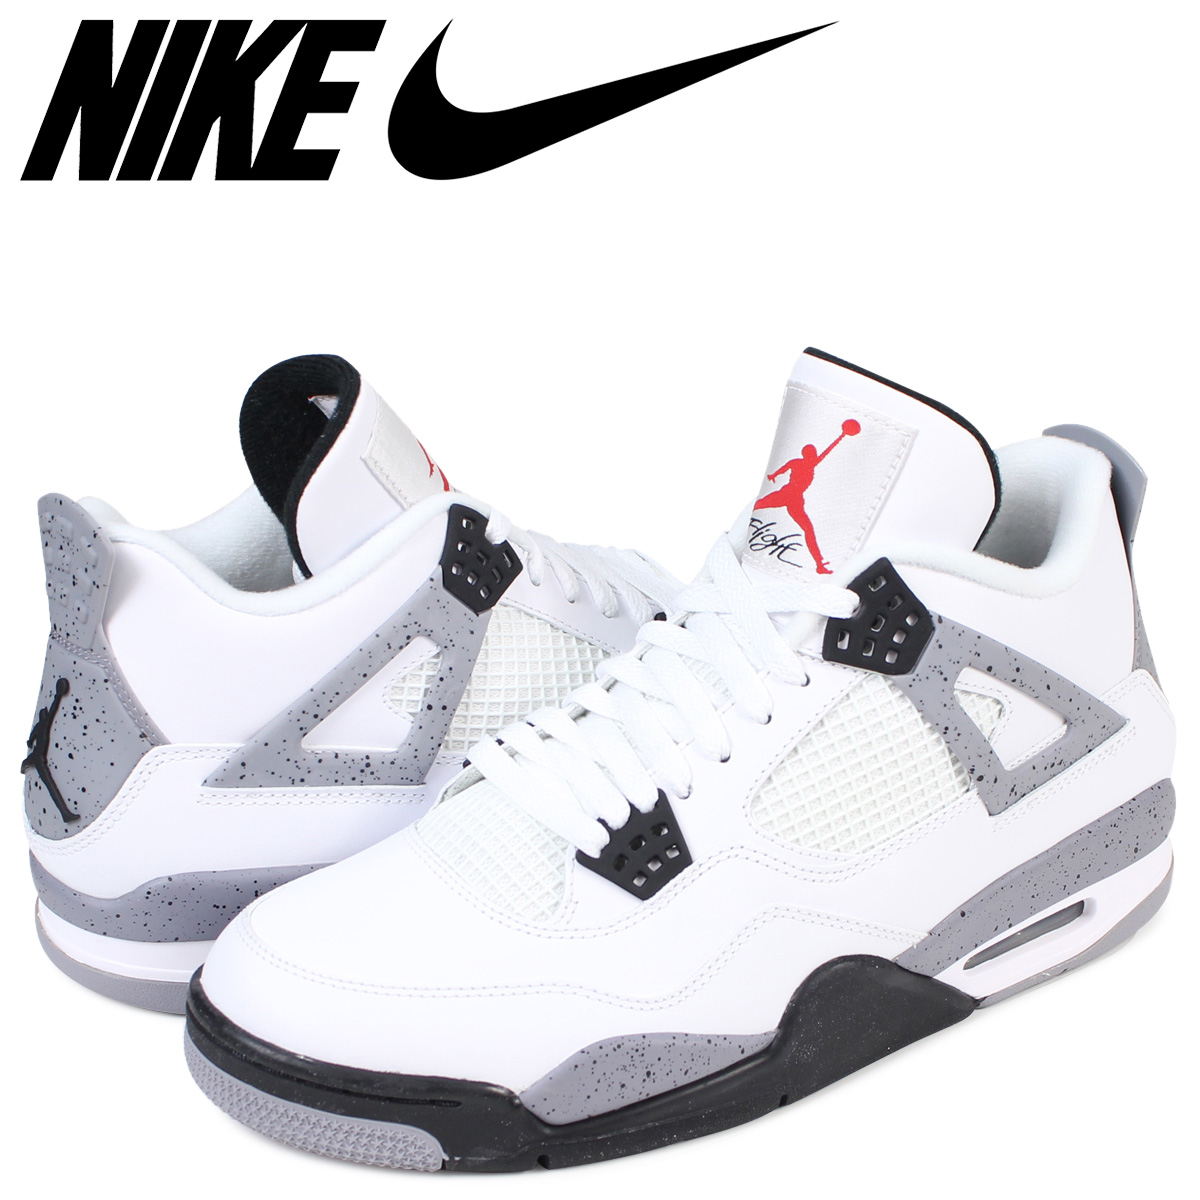 sale retailer c2880 7b001 NIKE AIR JORDAN 4 RETRO Nike Air Jordan 4 nostalgic sneakers 308,497-103  men's shoes white [1711]